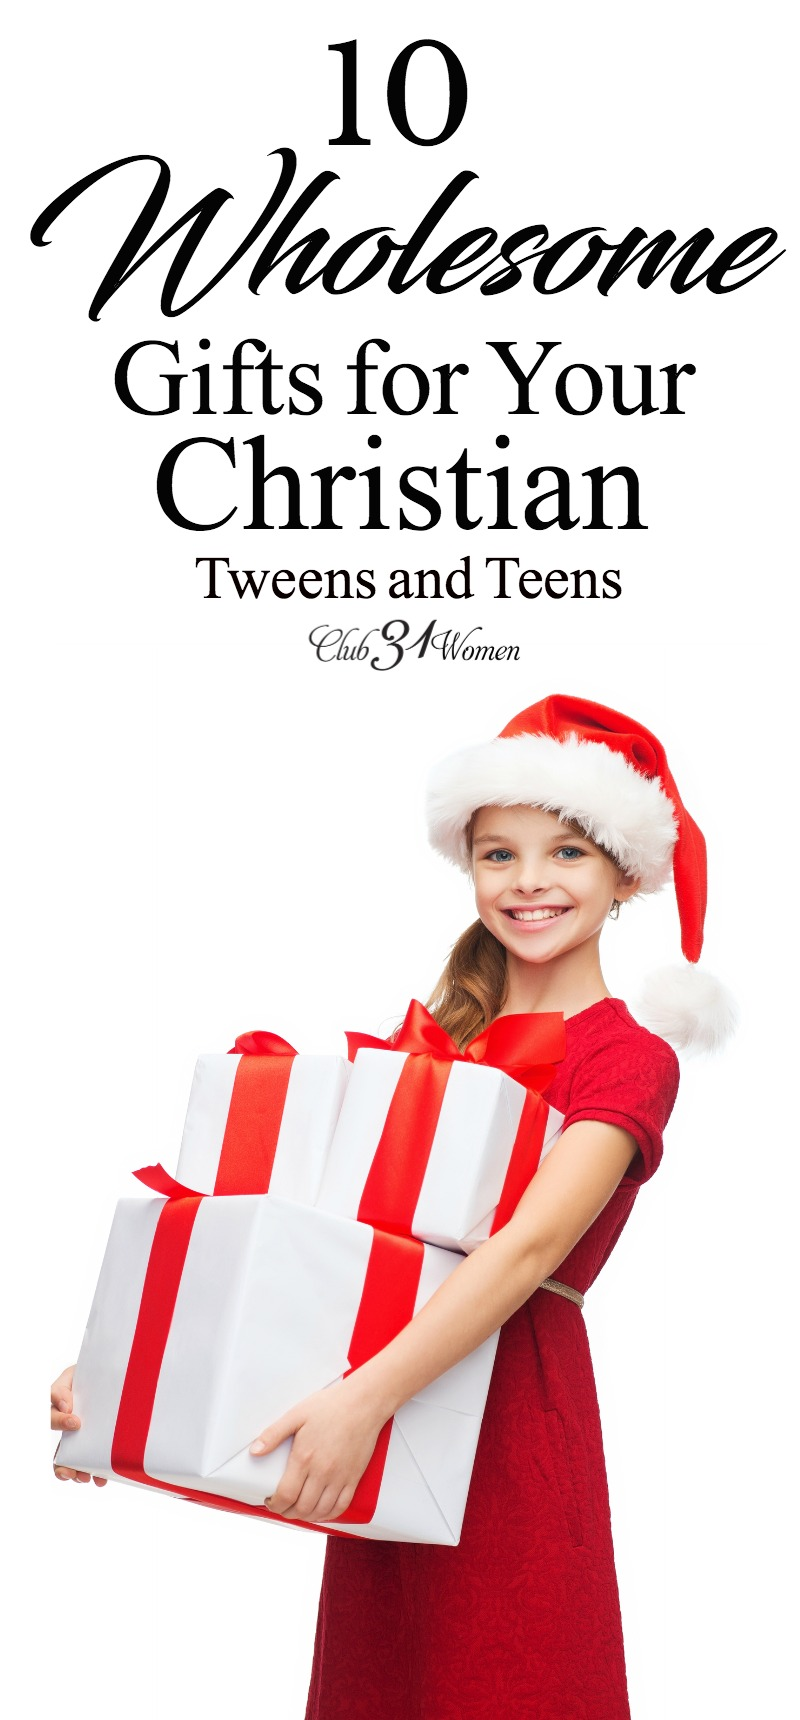 Finding wholesome gift options for older kids is no easy feat! That's why I'm so happy to share this list of great ideas for Christian tweens and teens! via @Club31Women